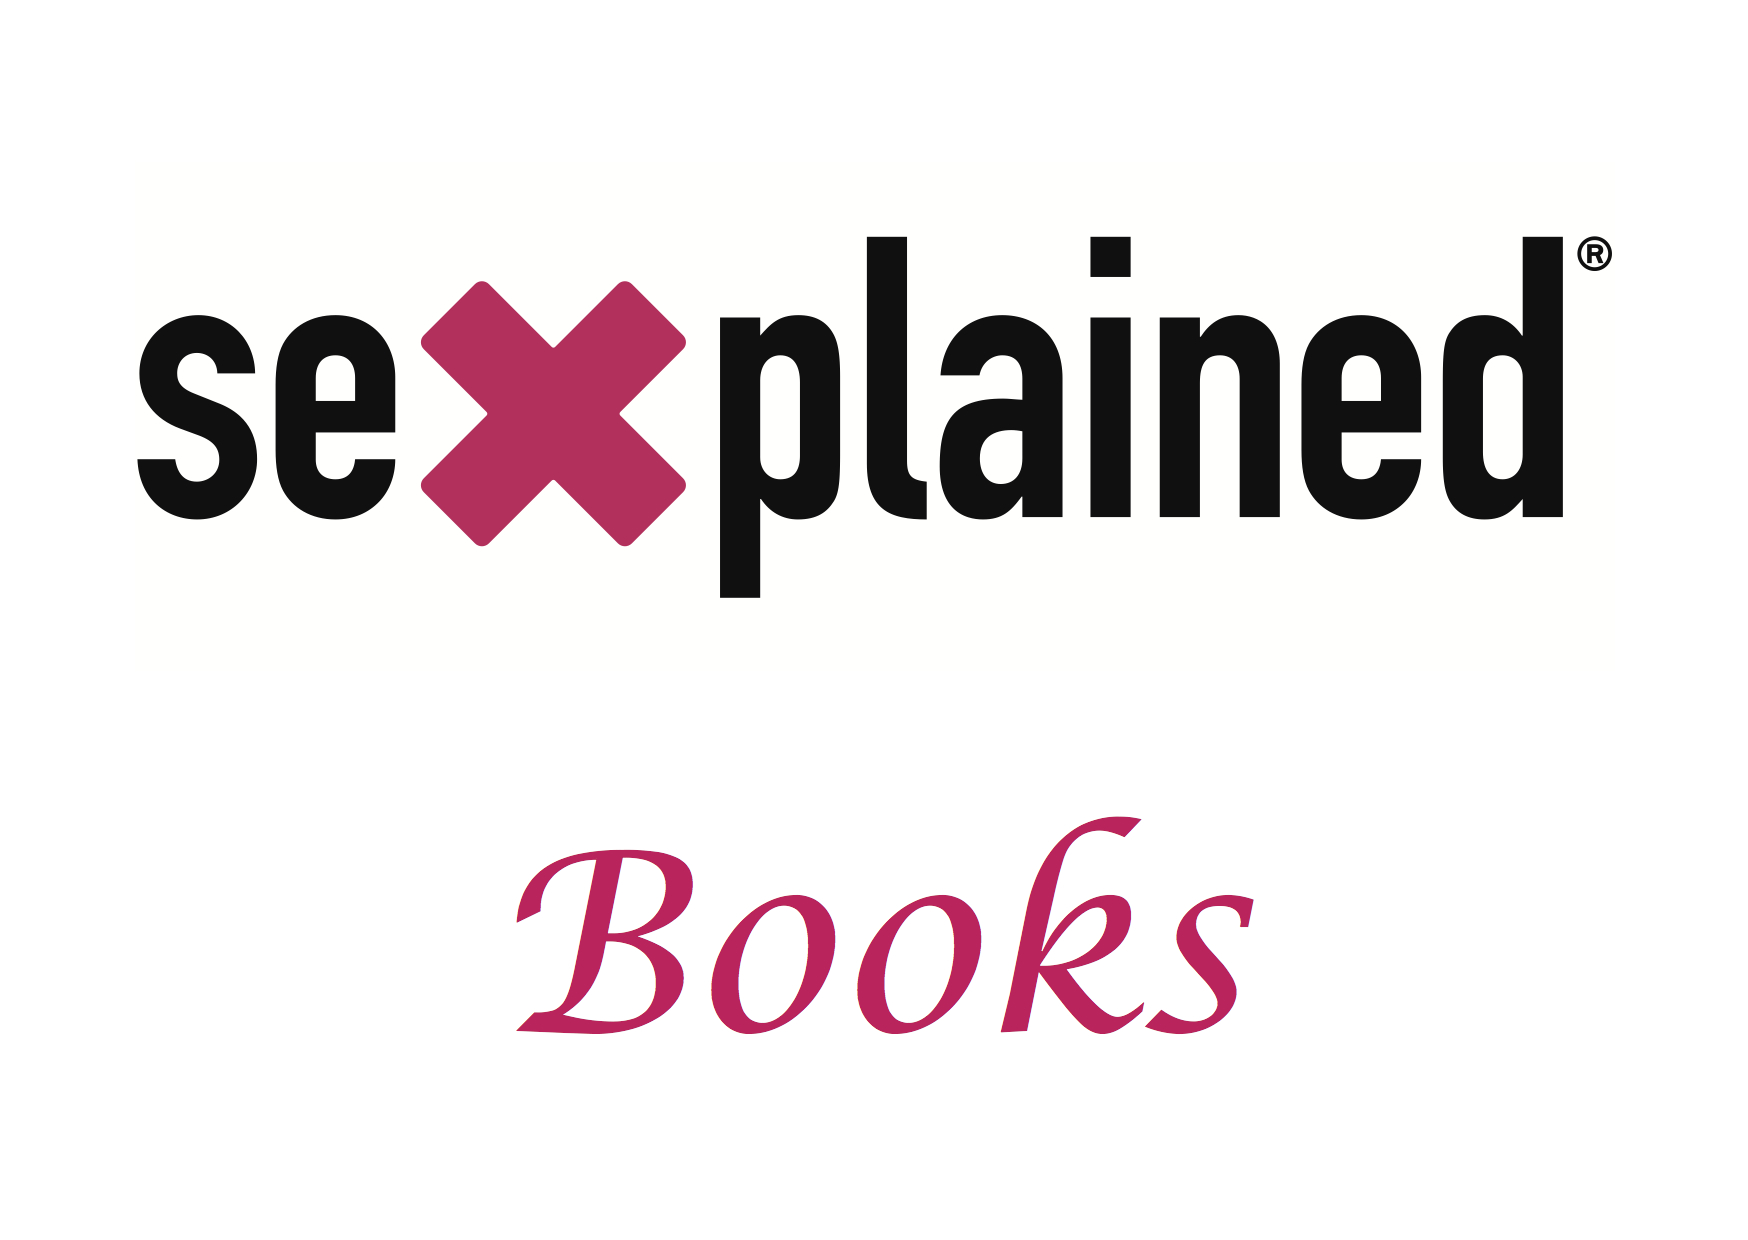 Sexplained Books